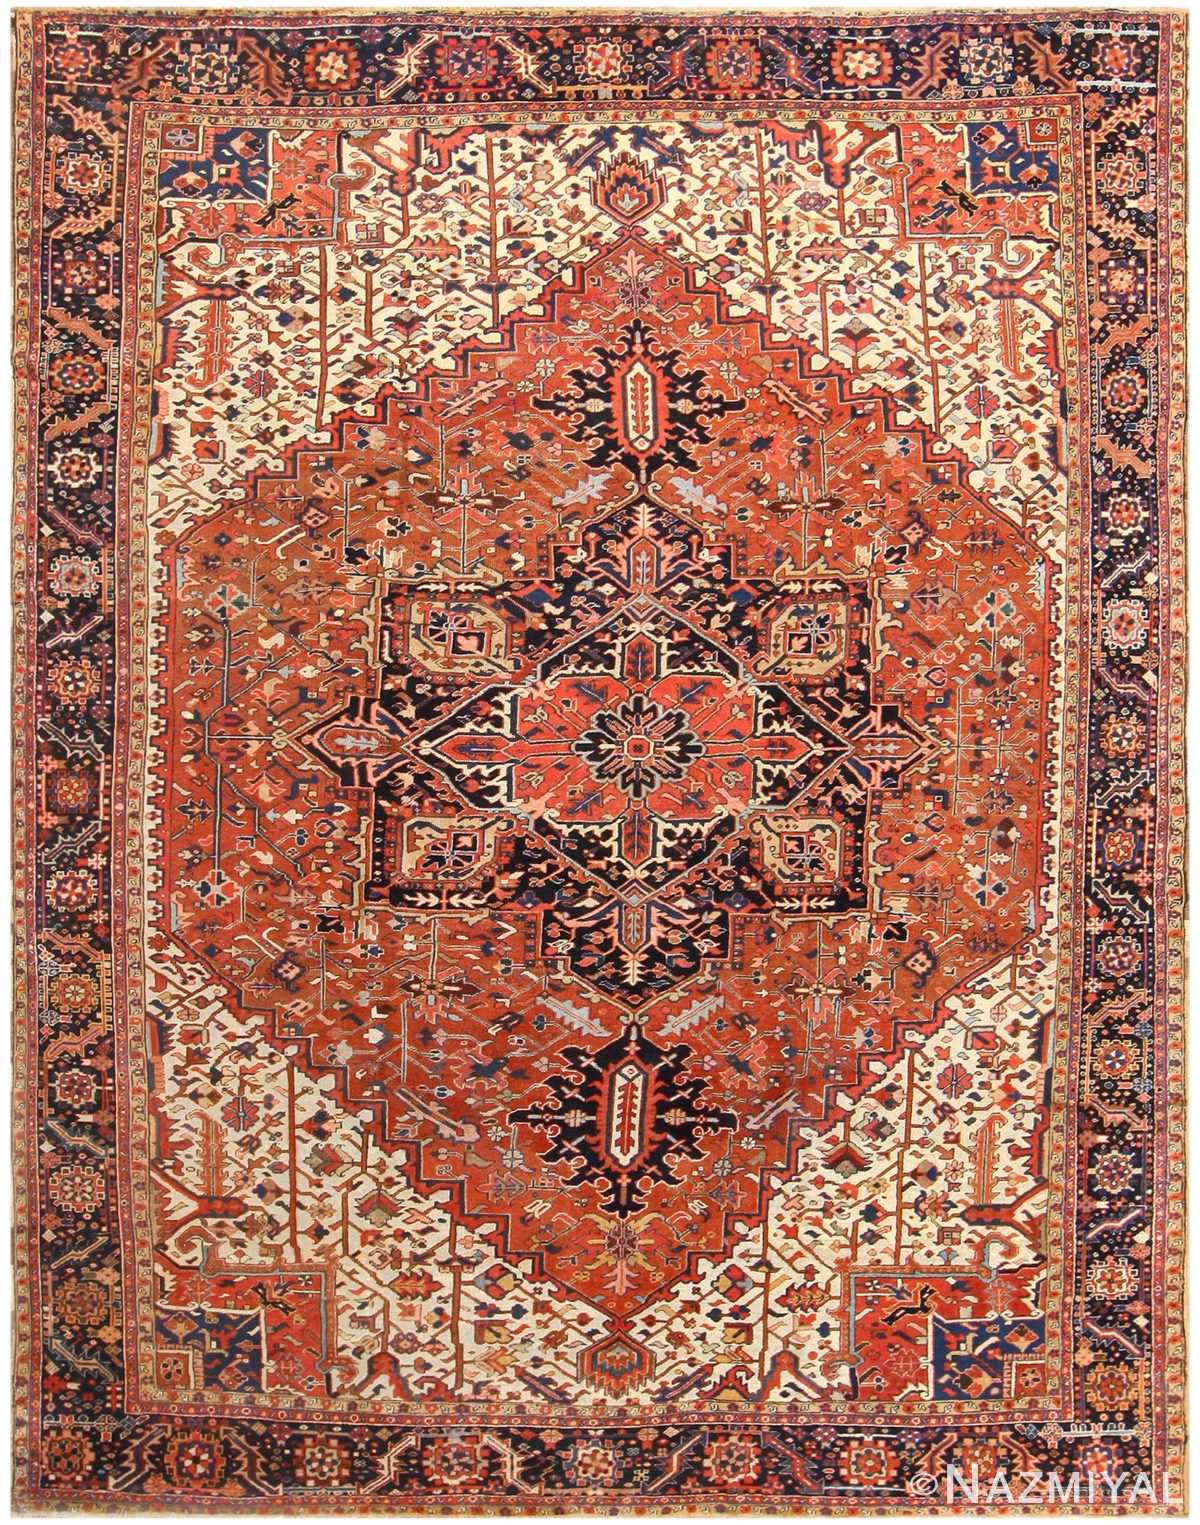 Antique Persian Heriz Rug 48318 Detail/Large View